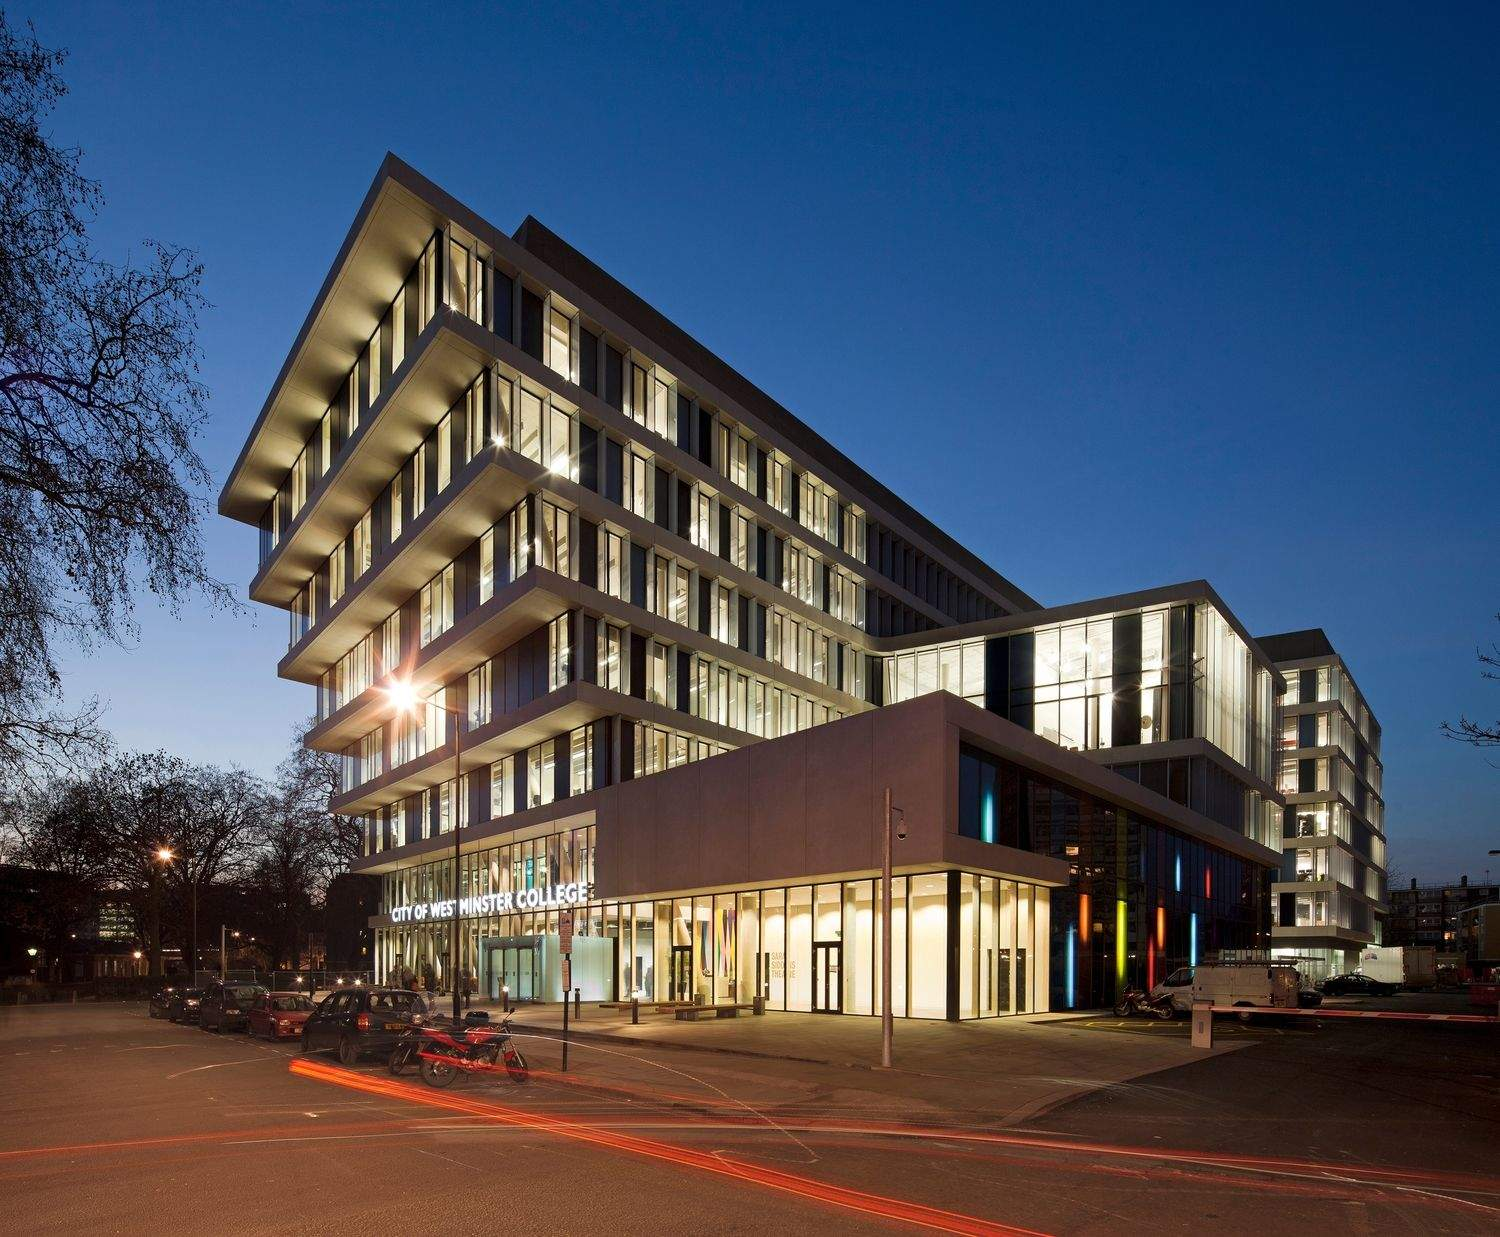 It would probably be a bit scary to work on the top floor of this shifted building, but that doesn't mean it doesn't look amazing.  City of Westminster College in London features open learning spaces and